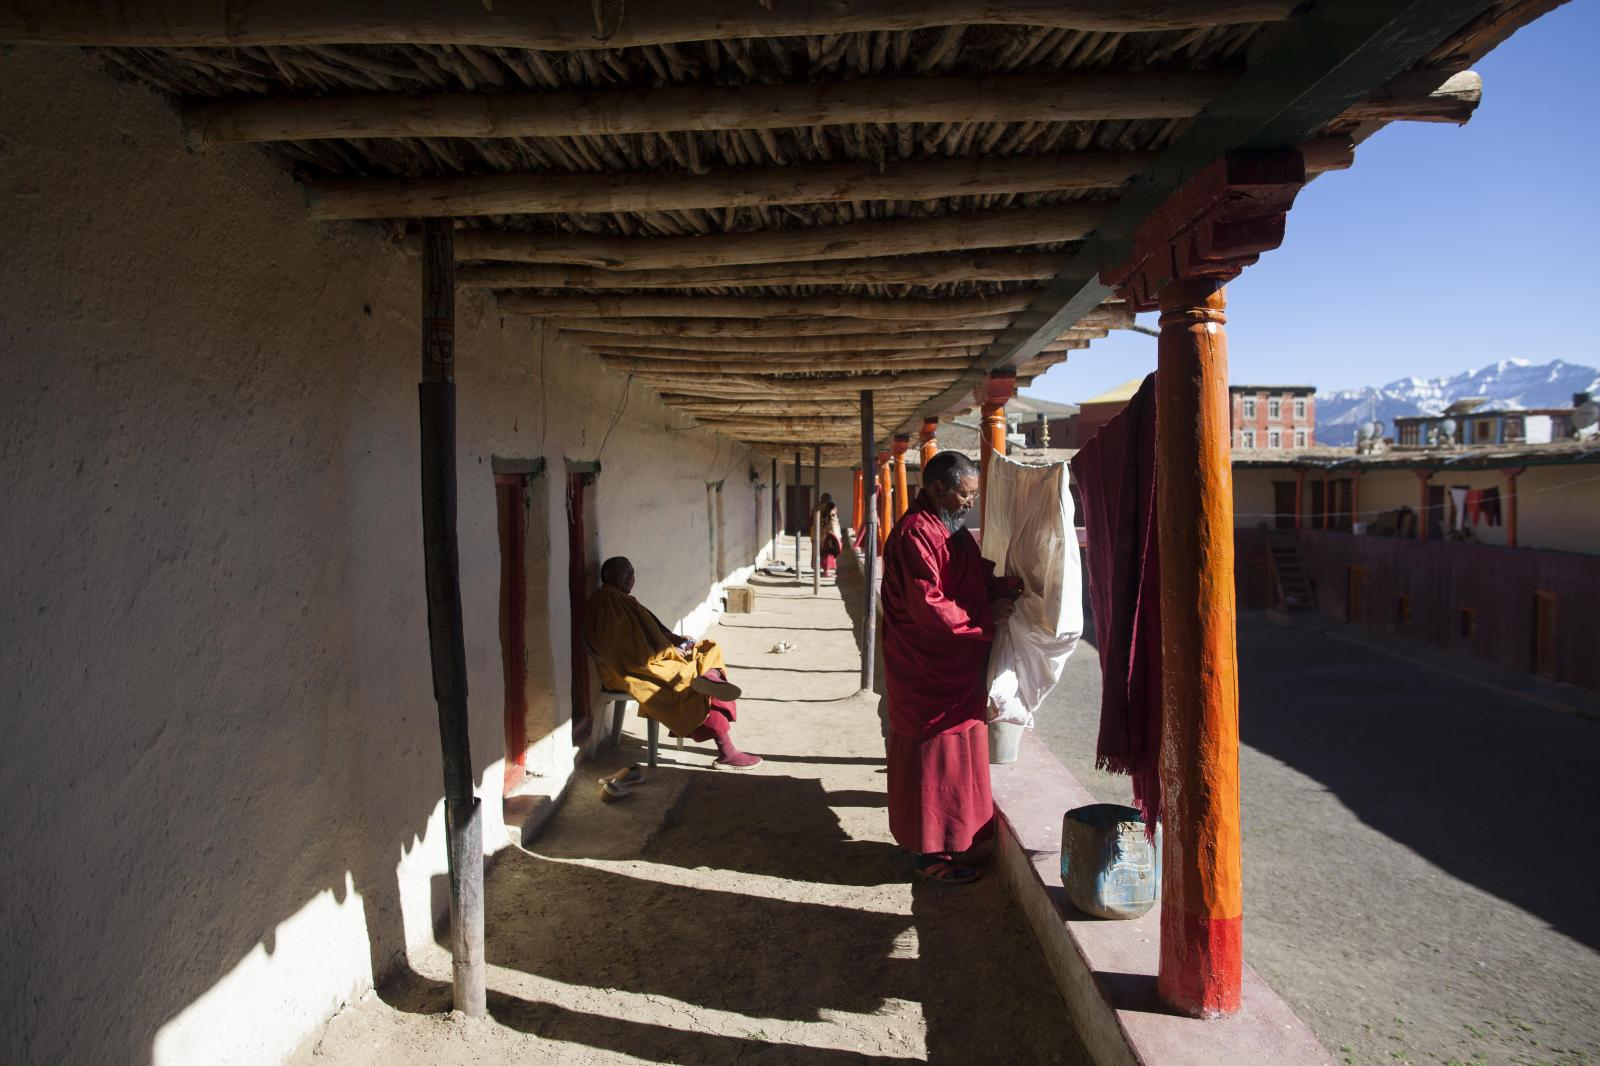 Buddhist monks Nawang Tashi (R), 53, and Nawang Lodoe, 49, rest after the afternoon 'puja' at Tnagyud Gompa monastery in Komik village, in Spiti Valley of the Indian northern state of Himachal Pradesh.